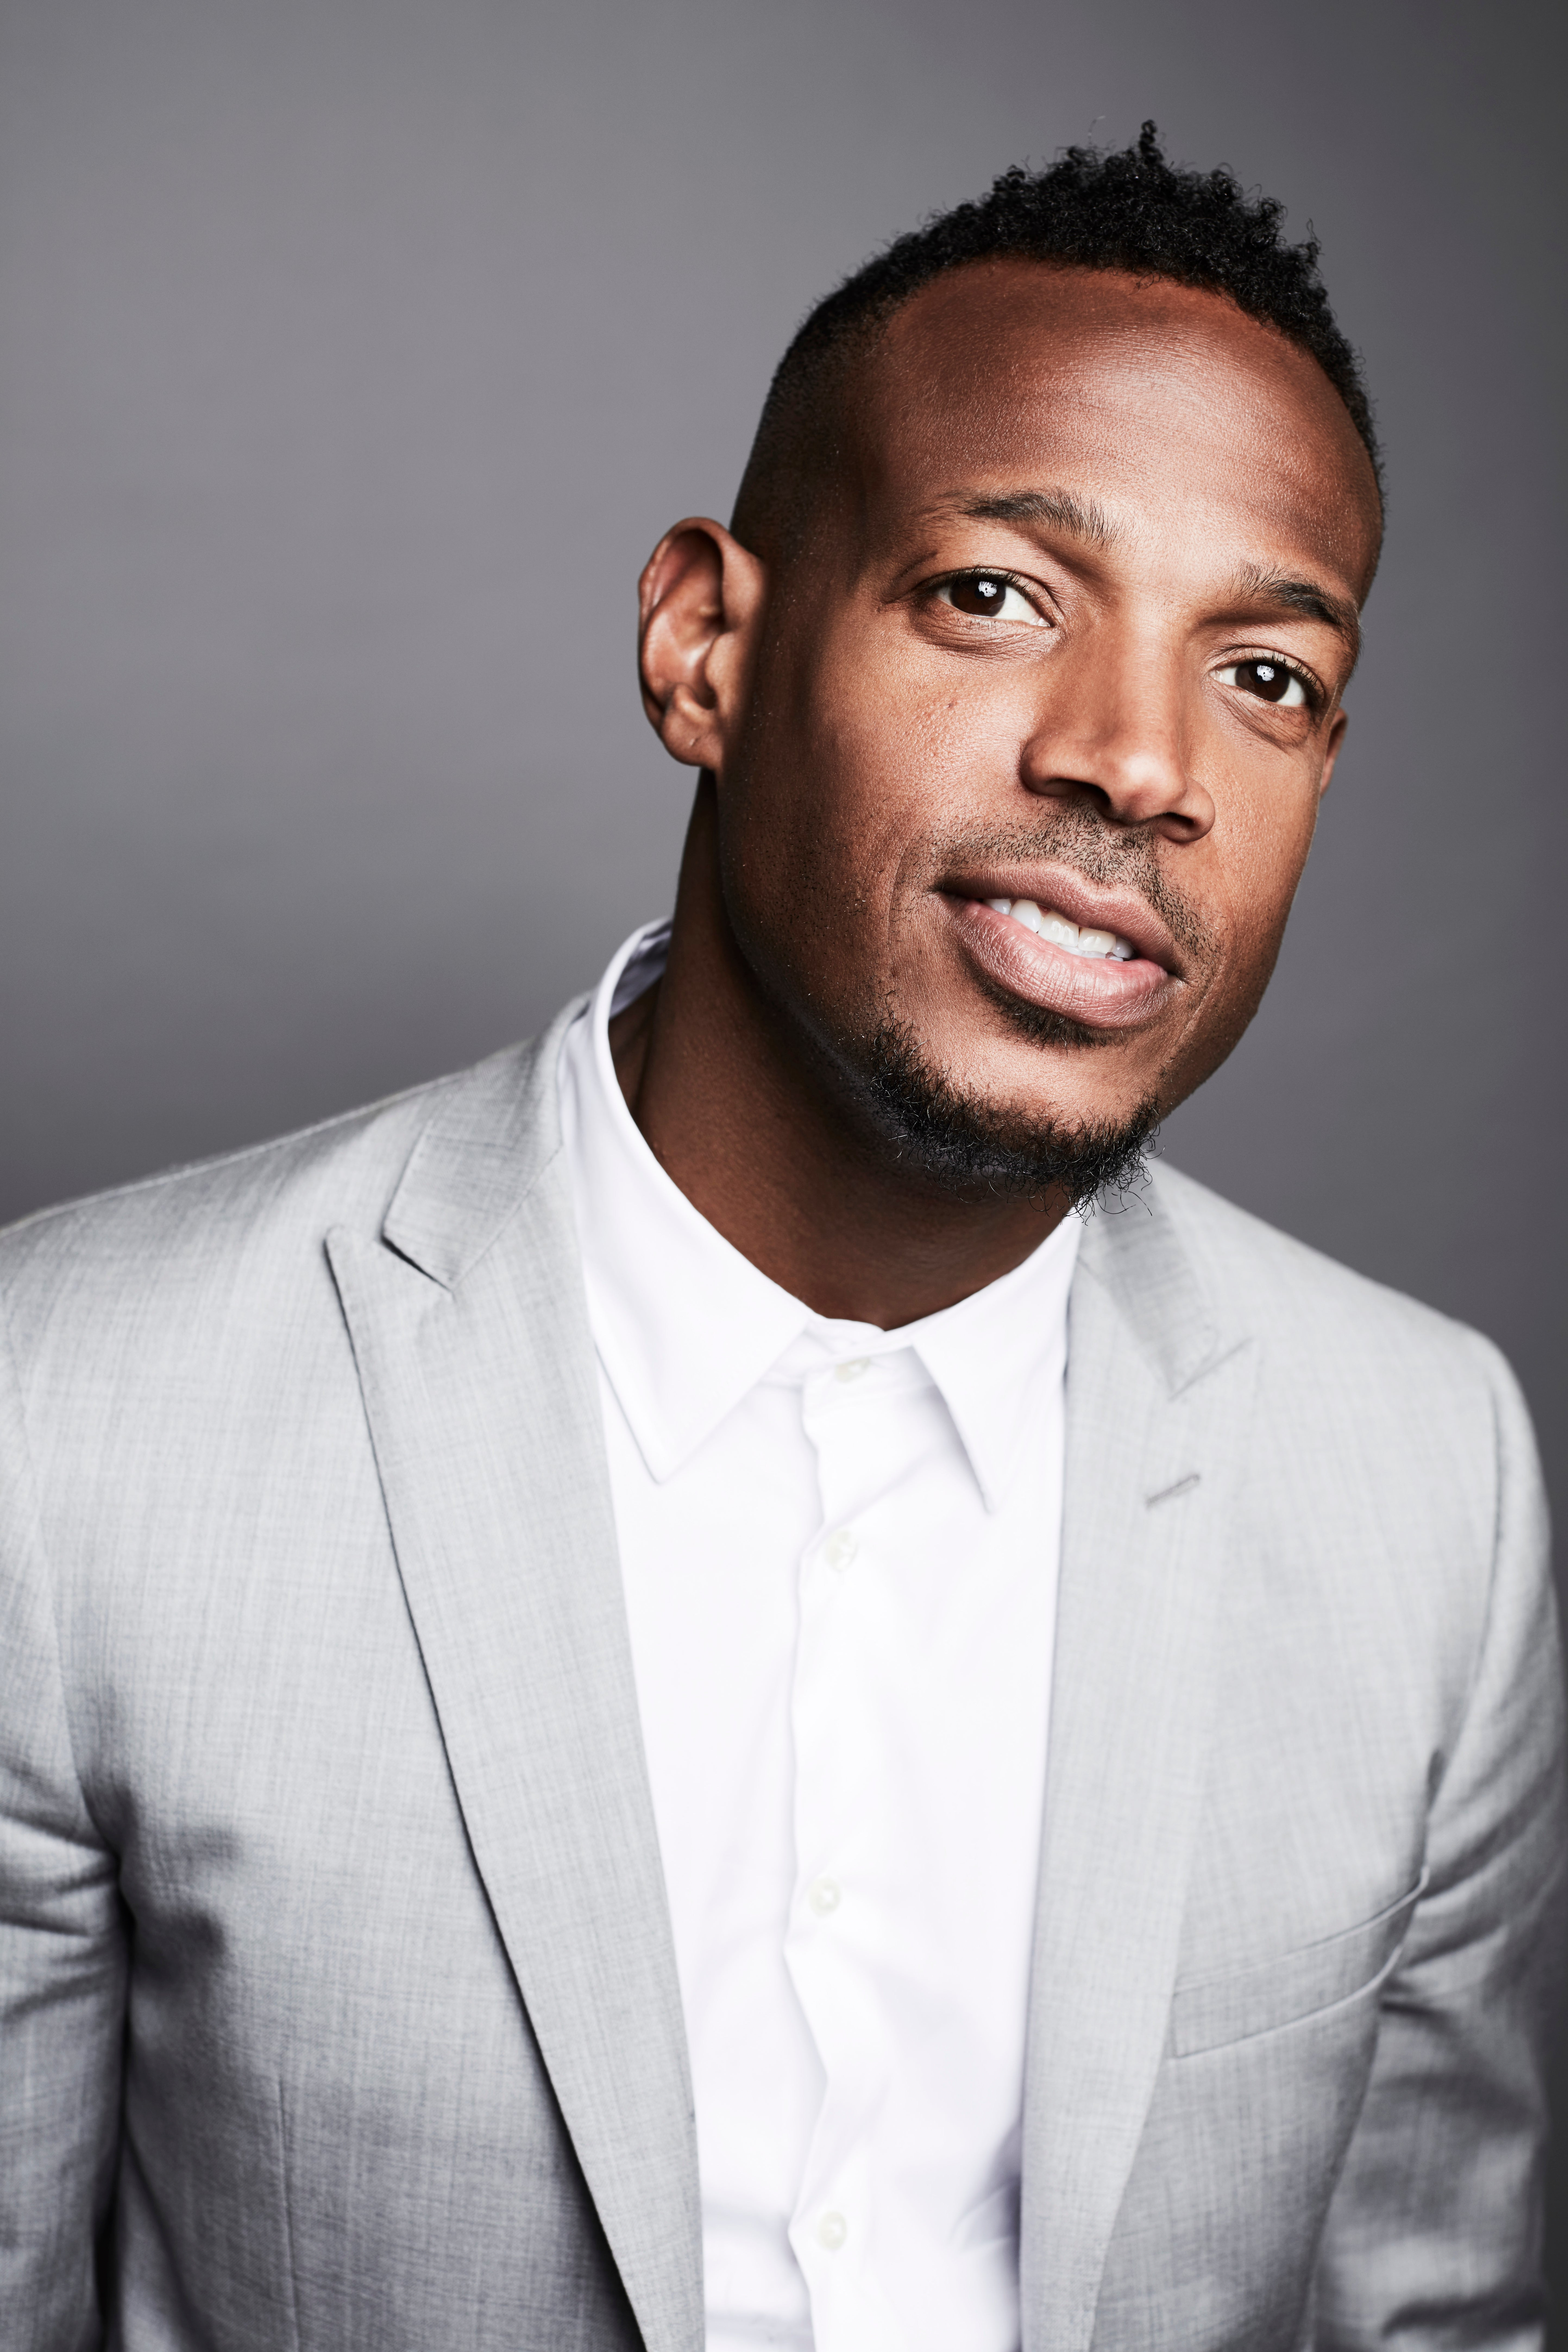 Marlon Wayans Might Be The Nicest Guy In Hollywood: 'It Makes My Heart Feel Good To Give'